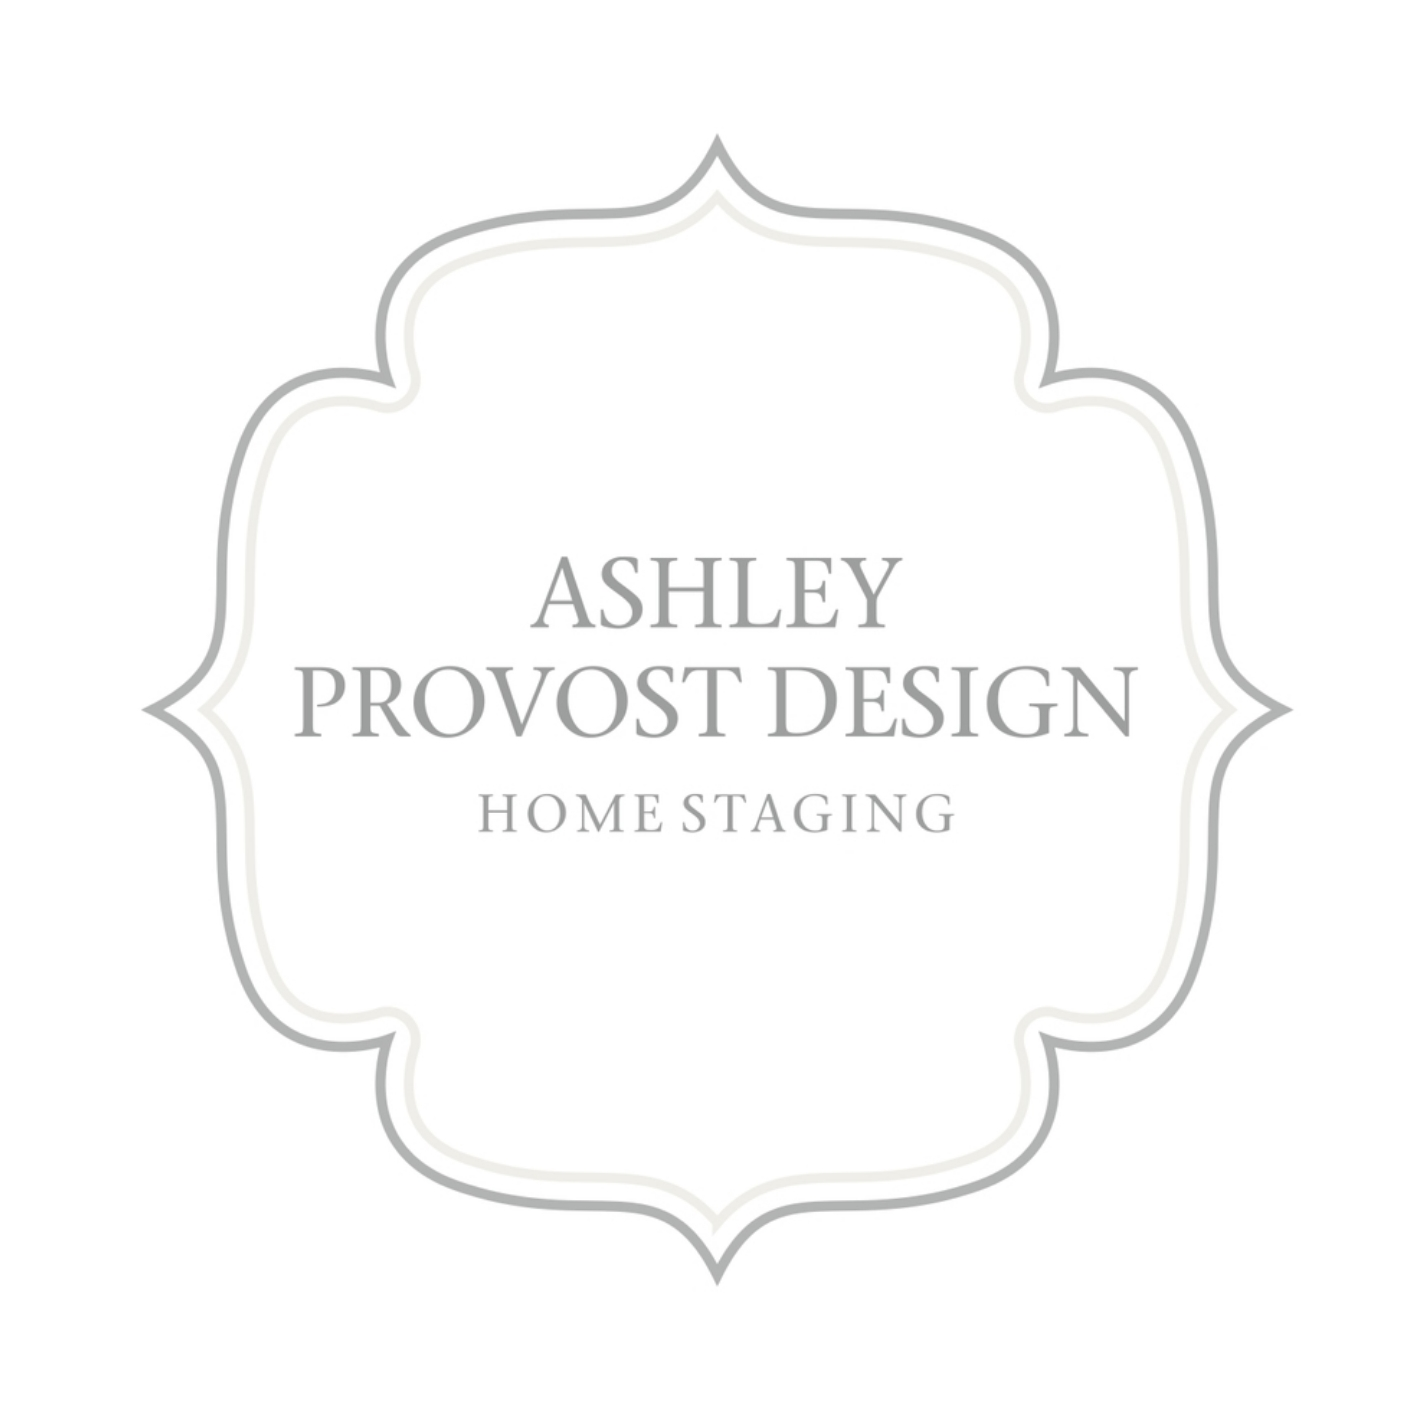 Ashley Provost Design